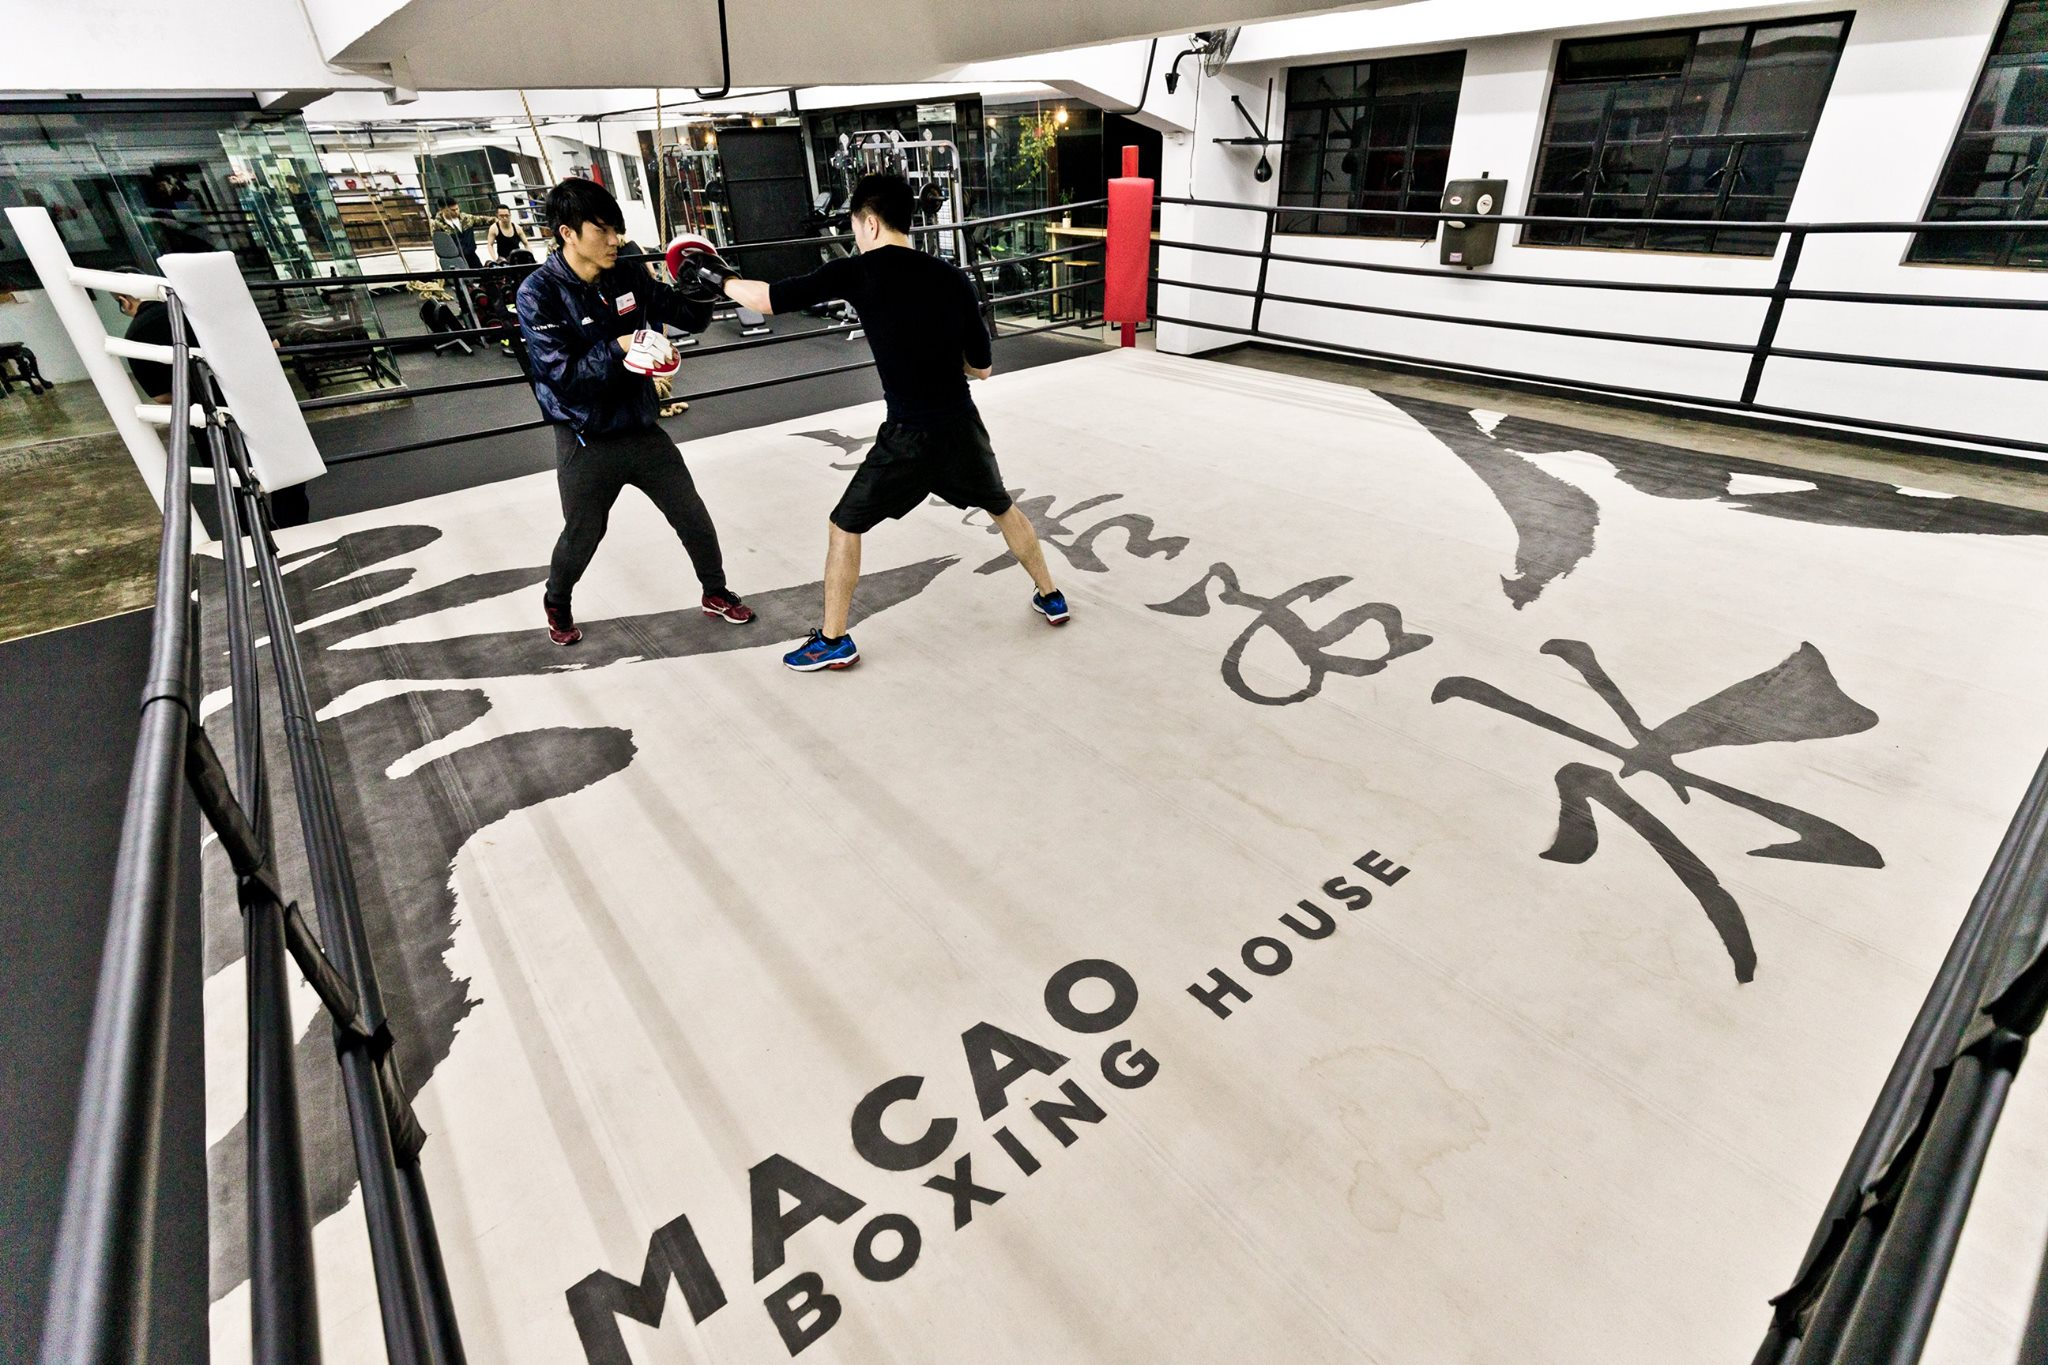 macau boxing house martial arts